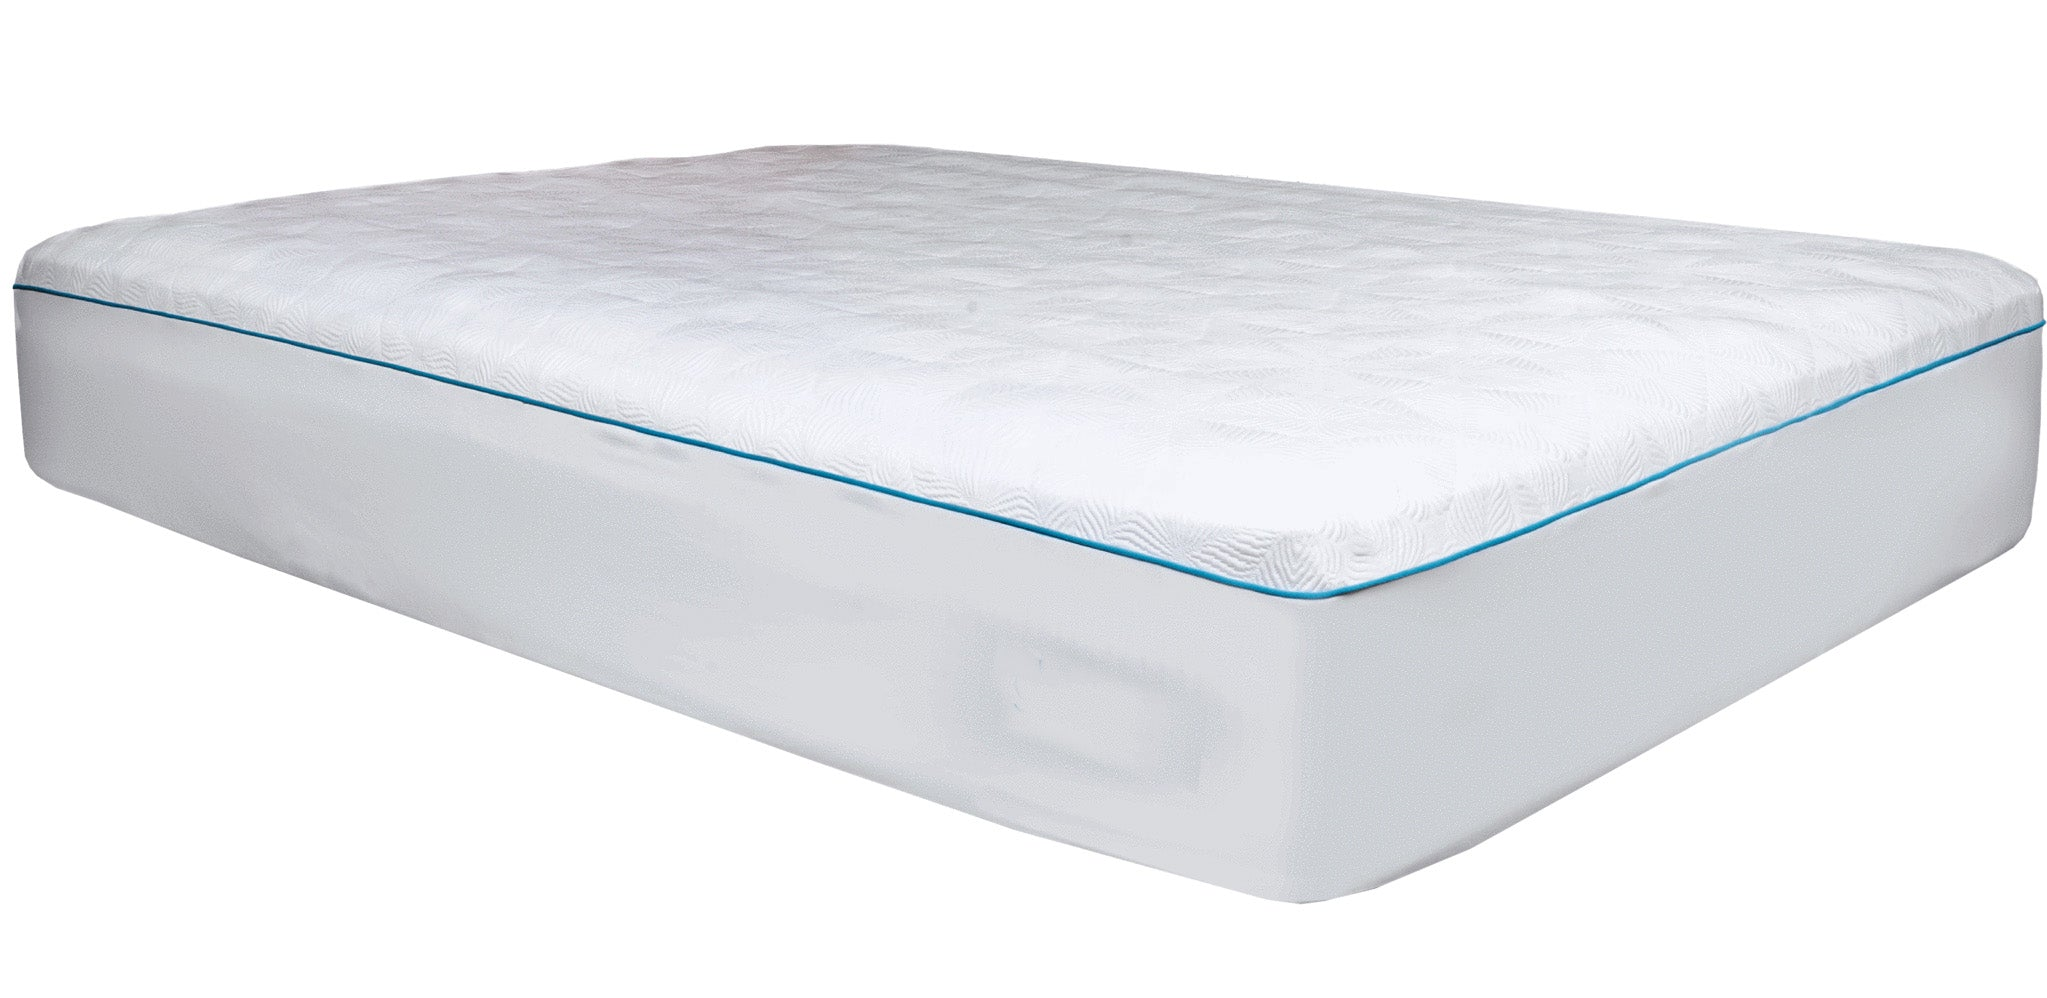 N7 | Polar Ice™ Premium Mattress Protector